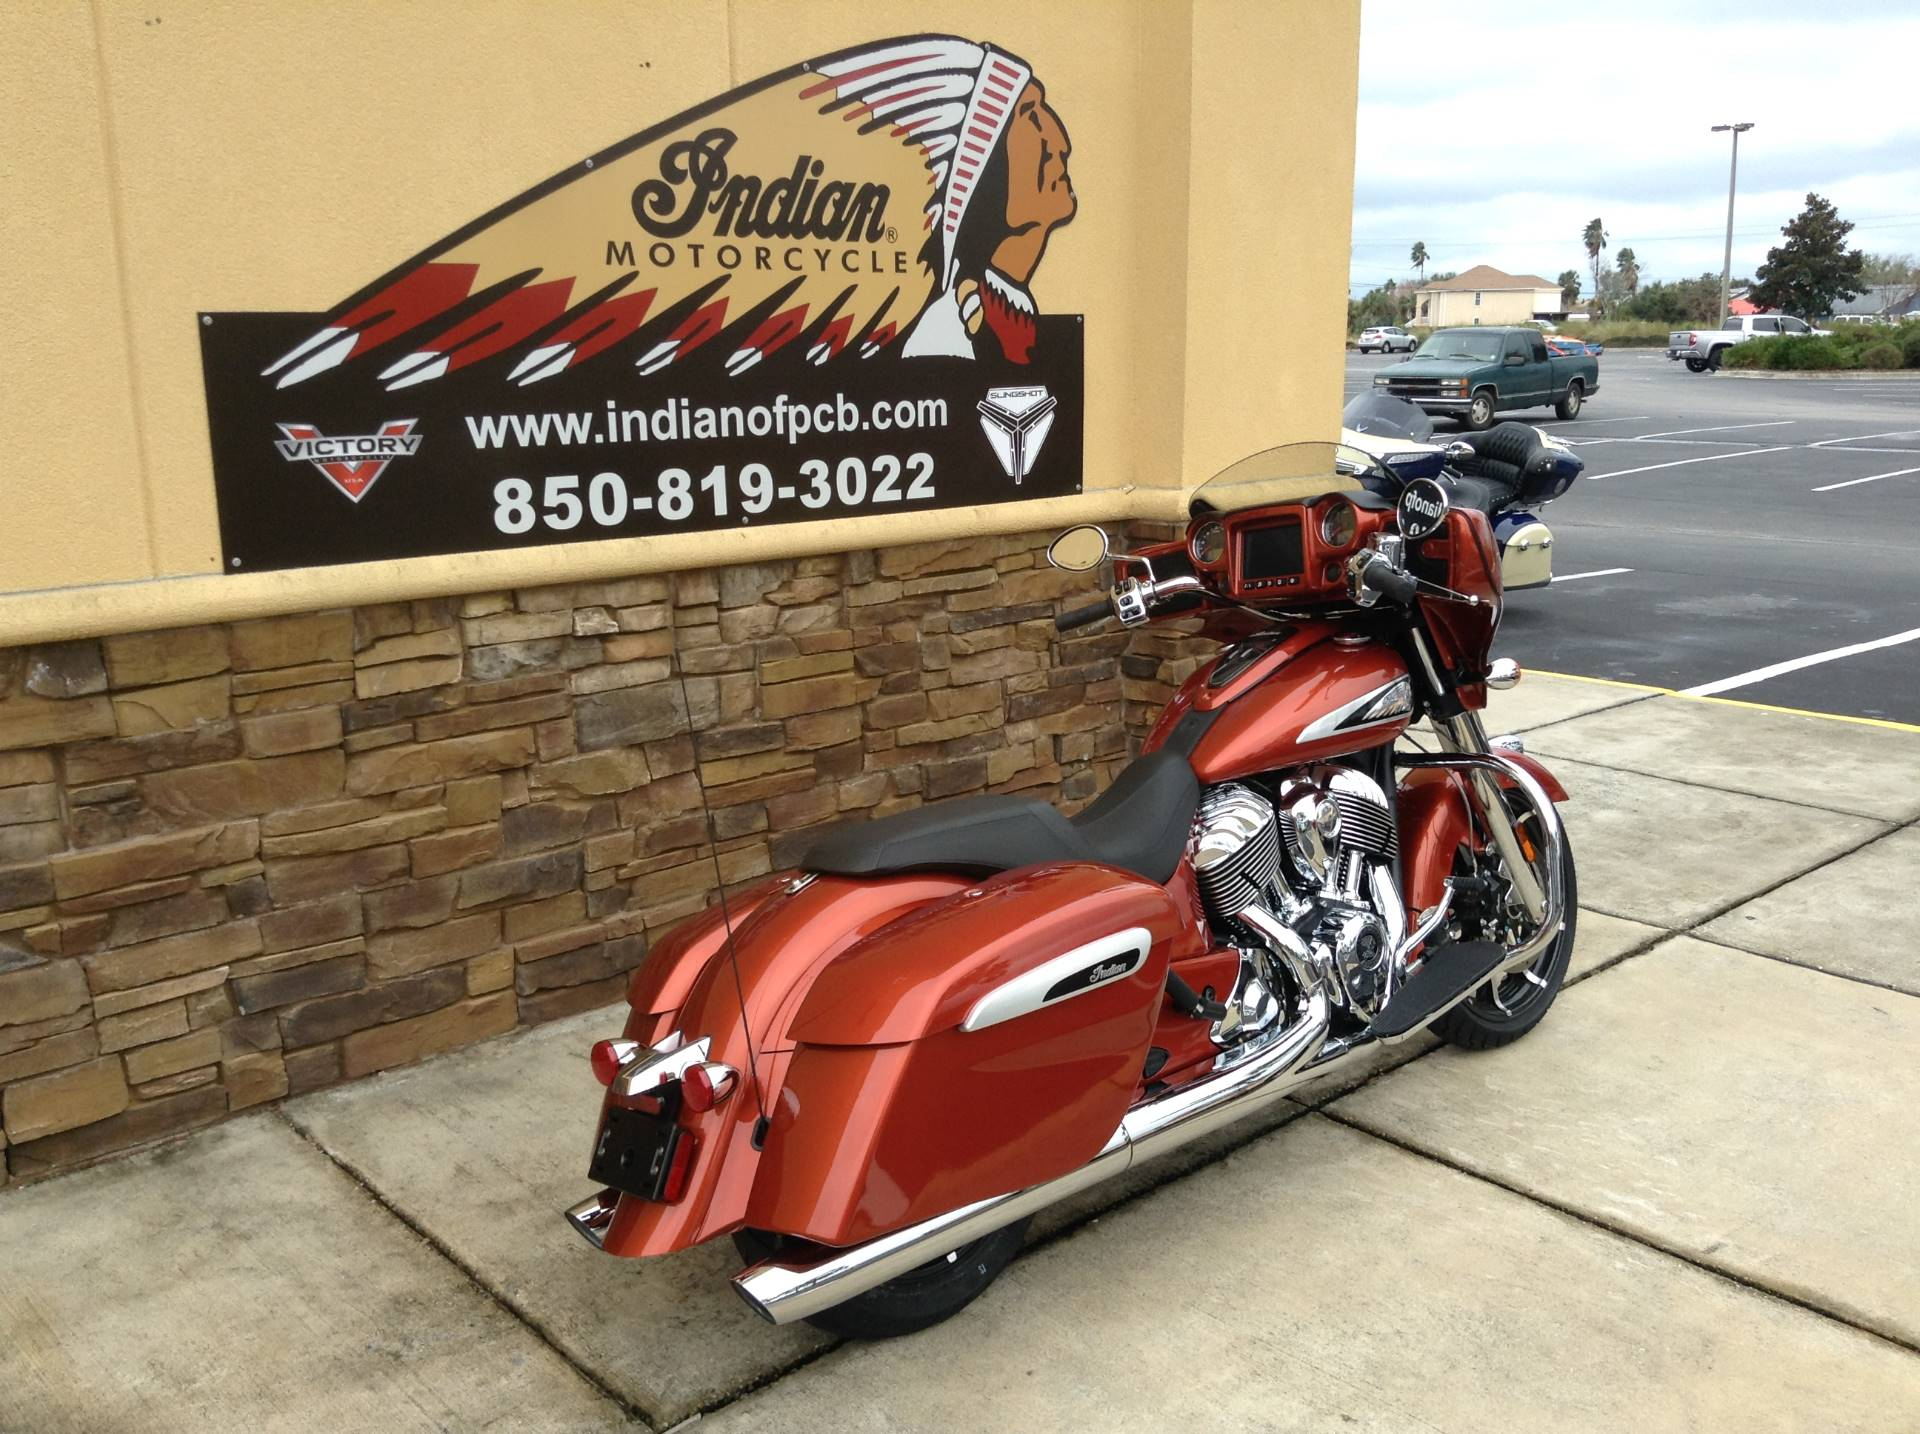 2019 Indian Chieftain Limited Icon Series in Panama City Beach, Florida - Photo 3